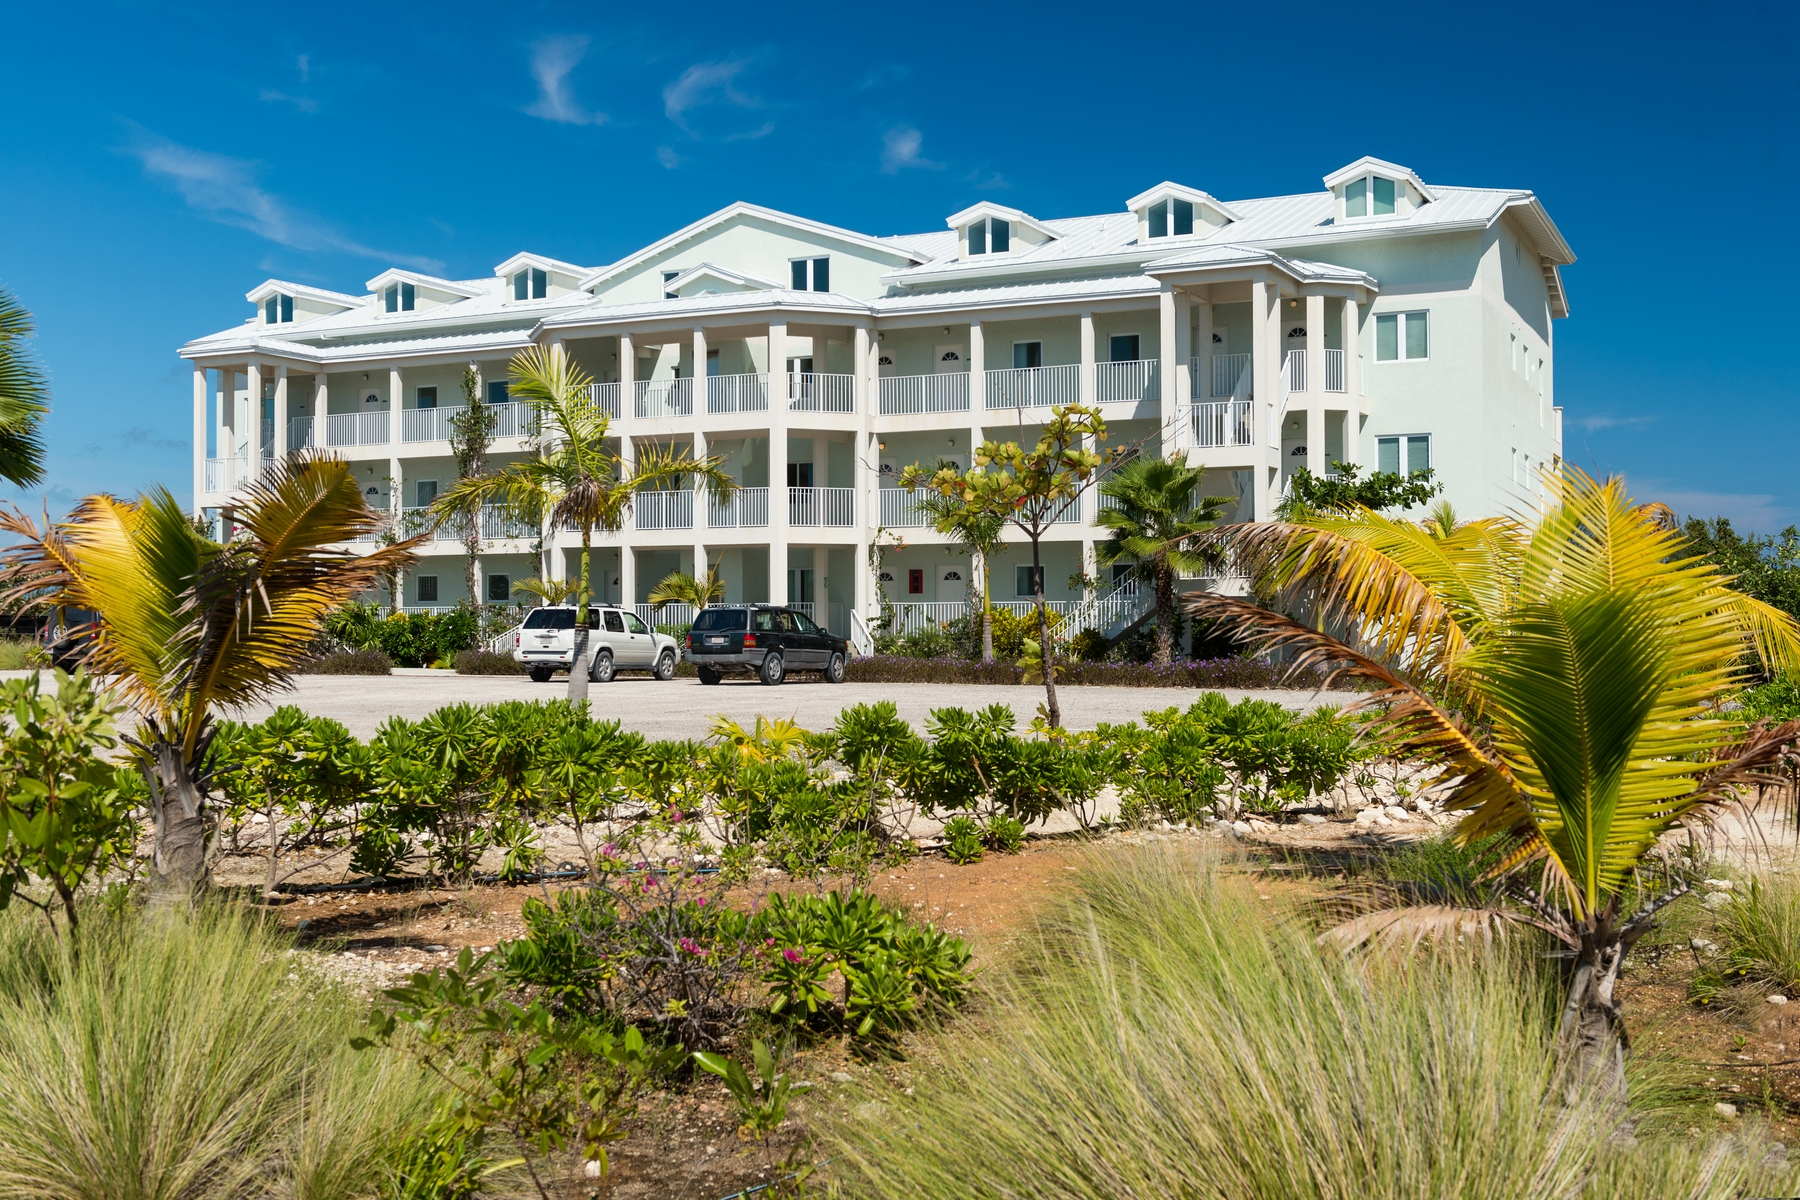 Condominium for Sale at Carib Club Condominiums - Suite 308 Lakeview Long Bay, Providenciales, TCI Turks And Caicos Islands